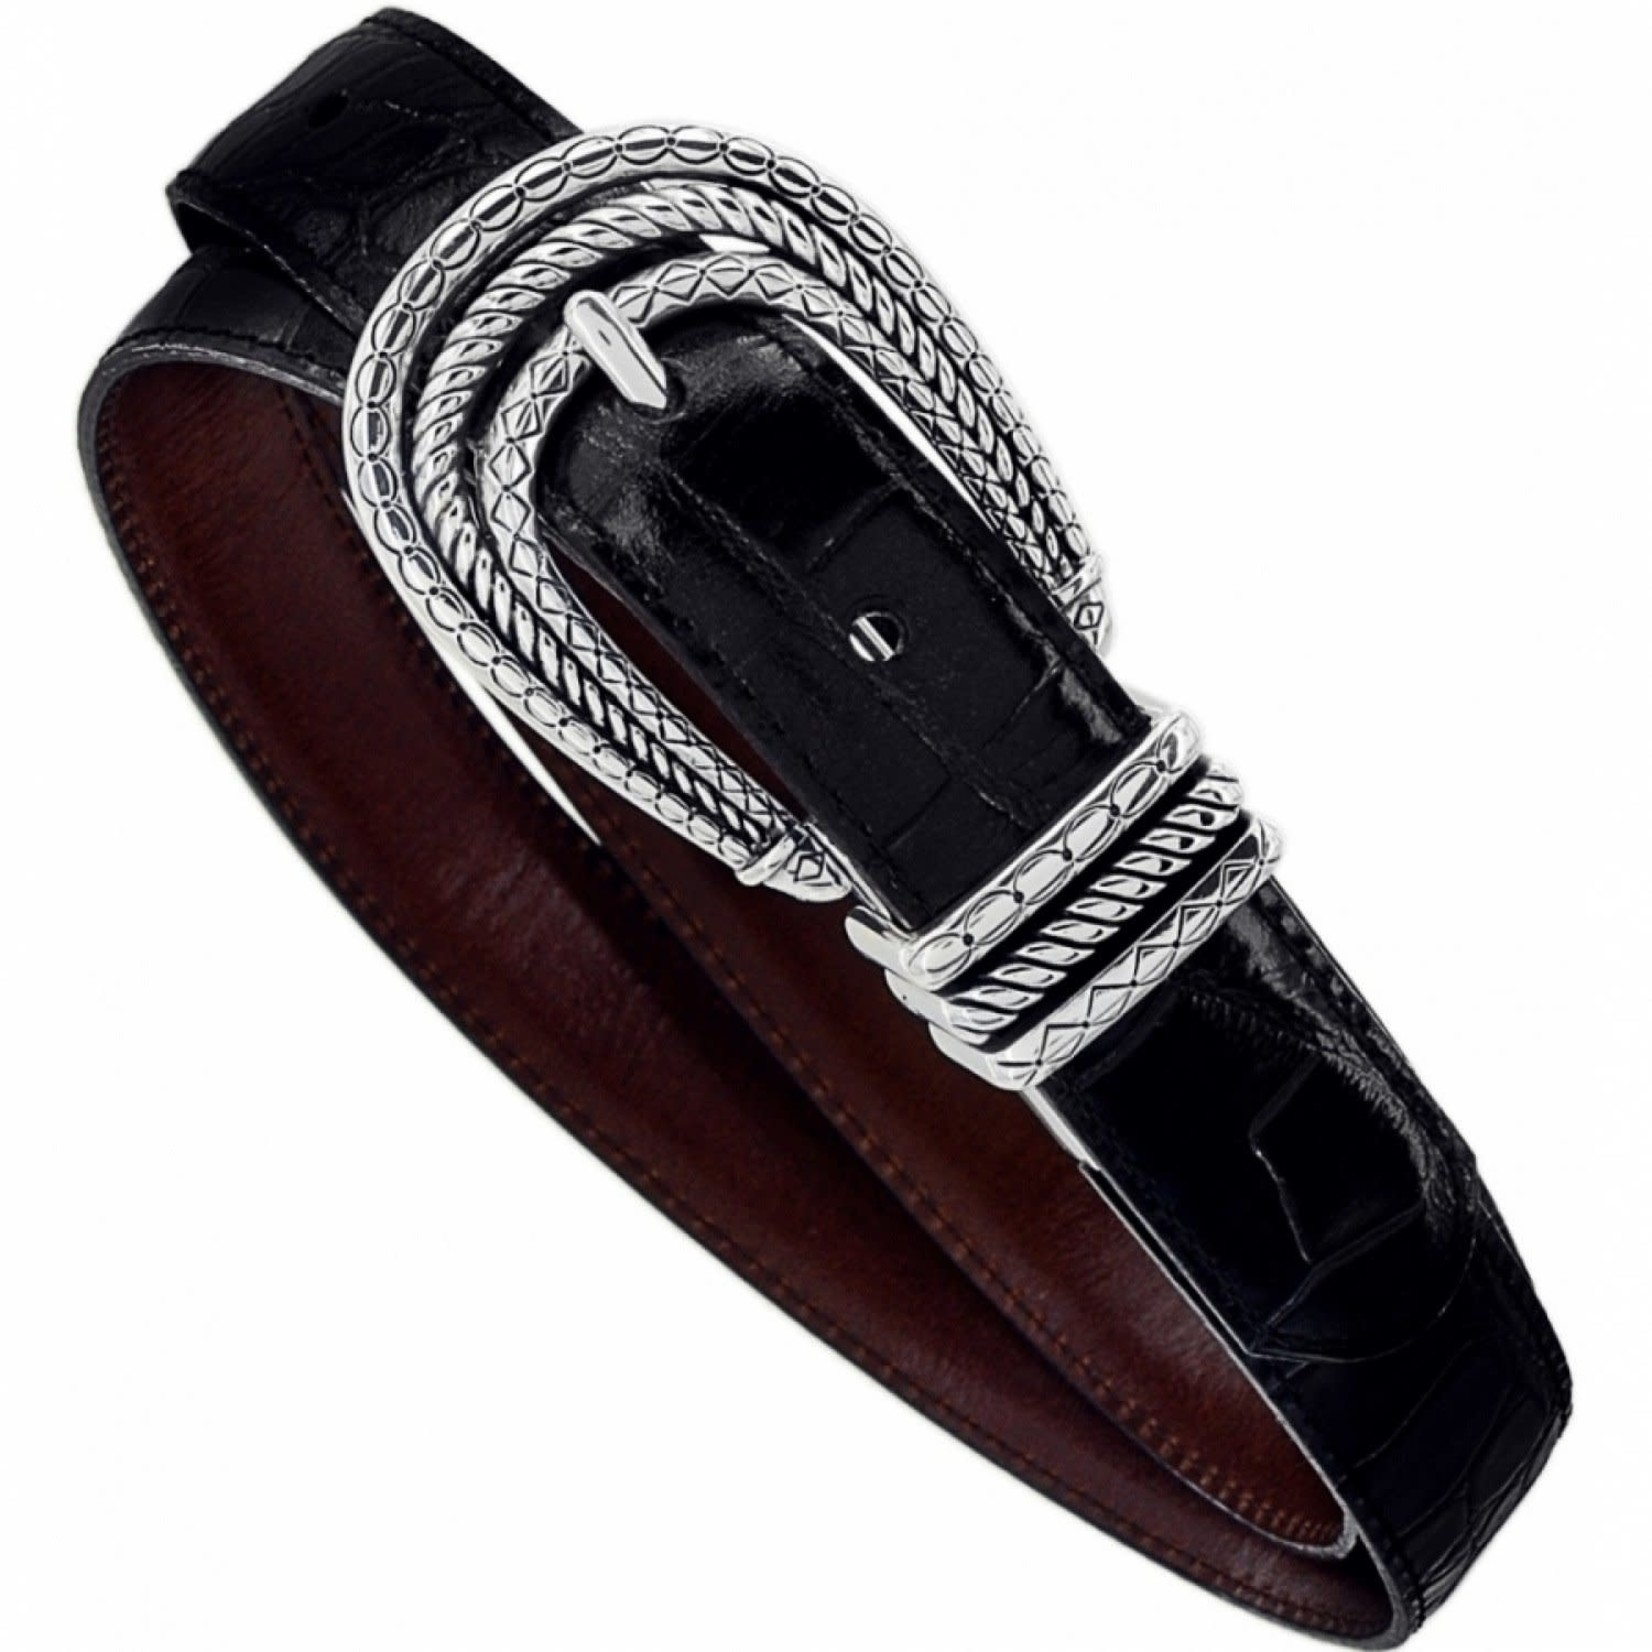 Brighton Tropic Heart Reversible Belt in Black/Brown Lg